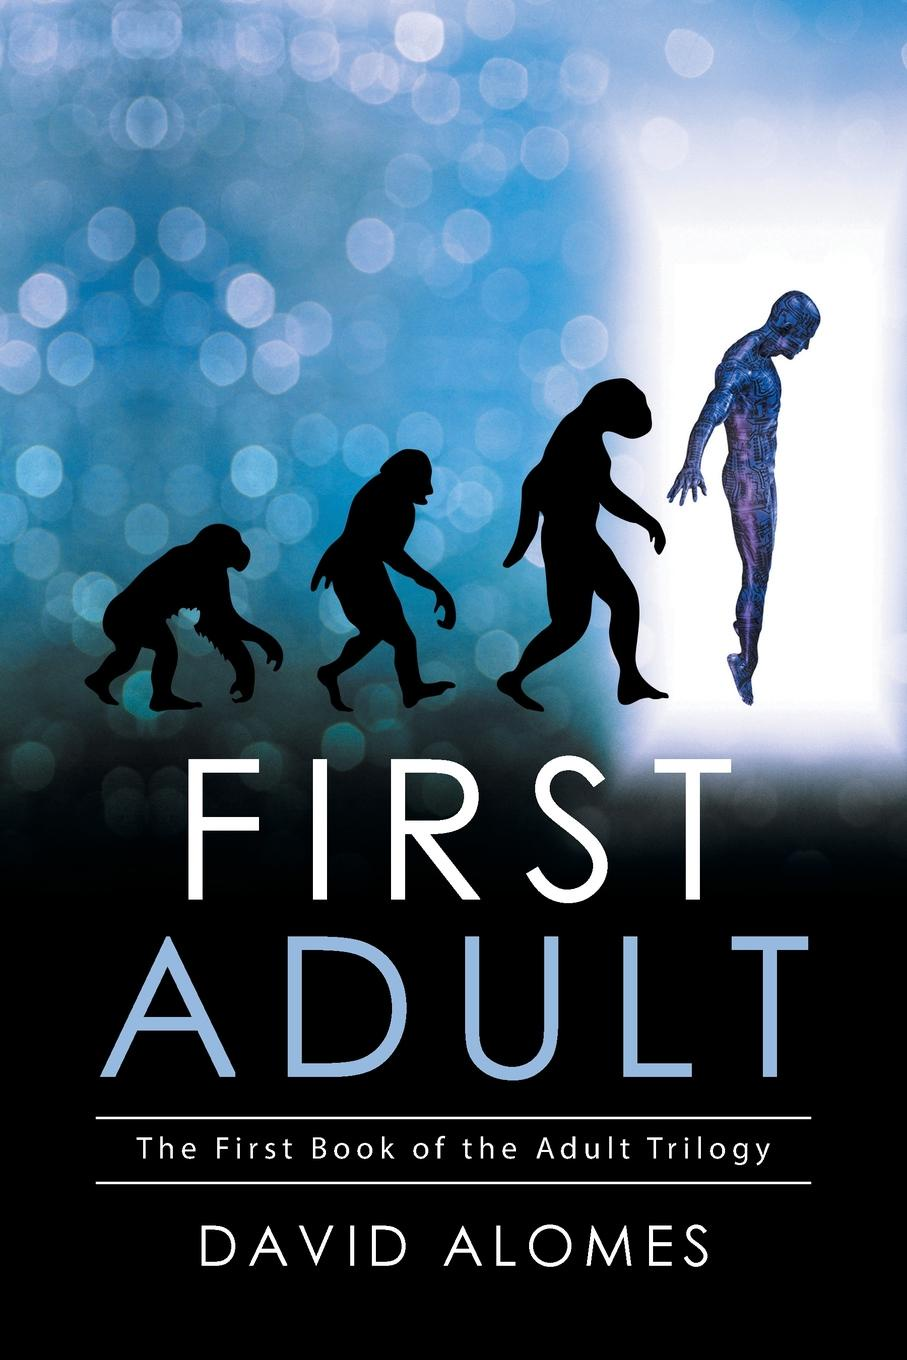 лучшая цена David Alomes First Adult. The First Book of the Adult Trilogy